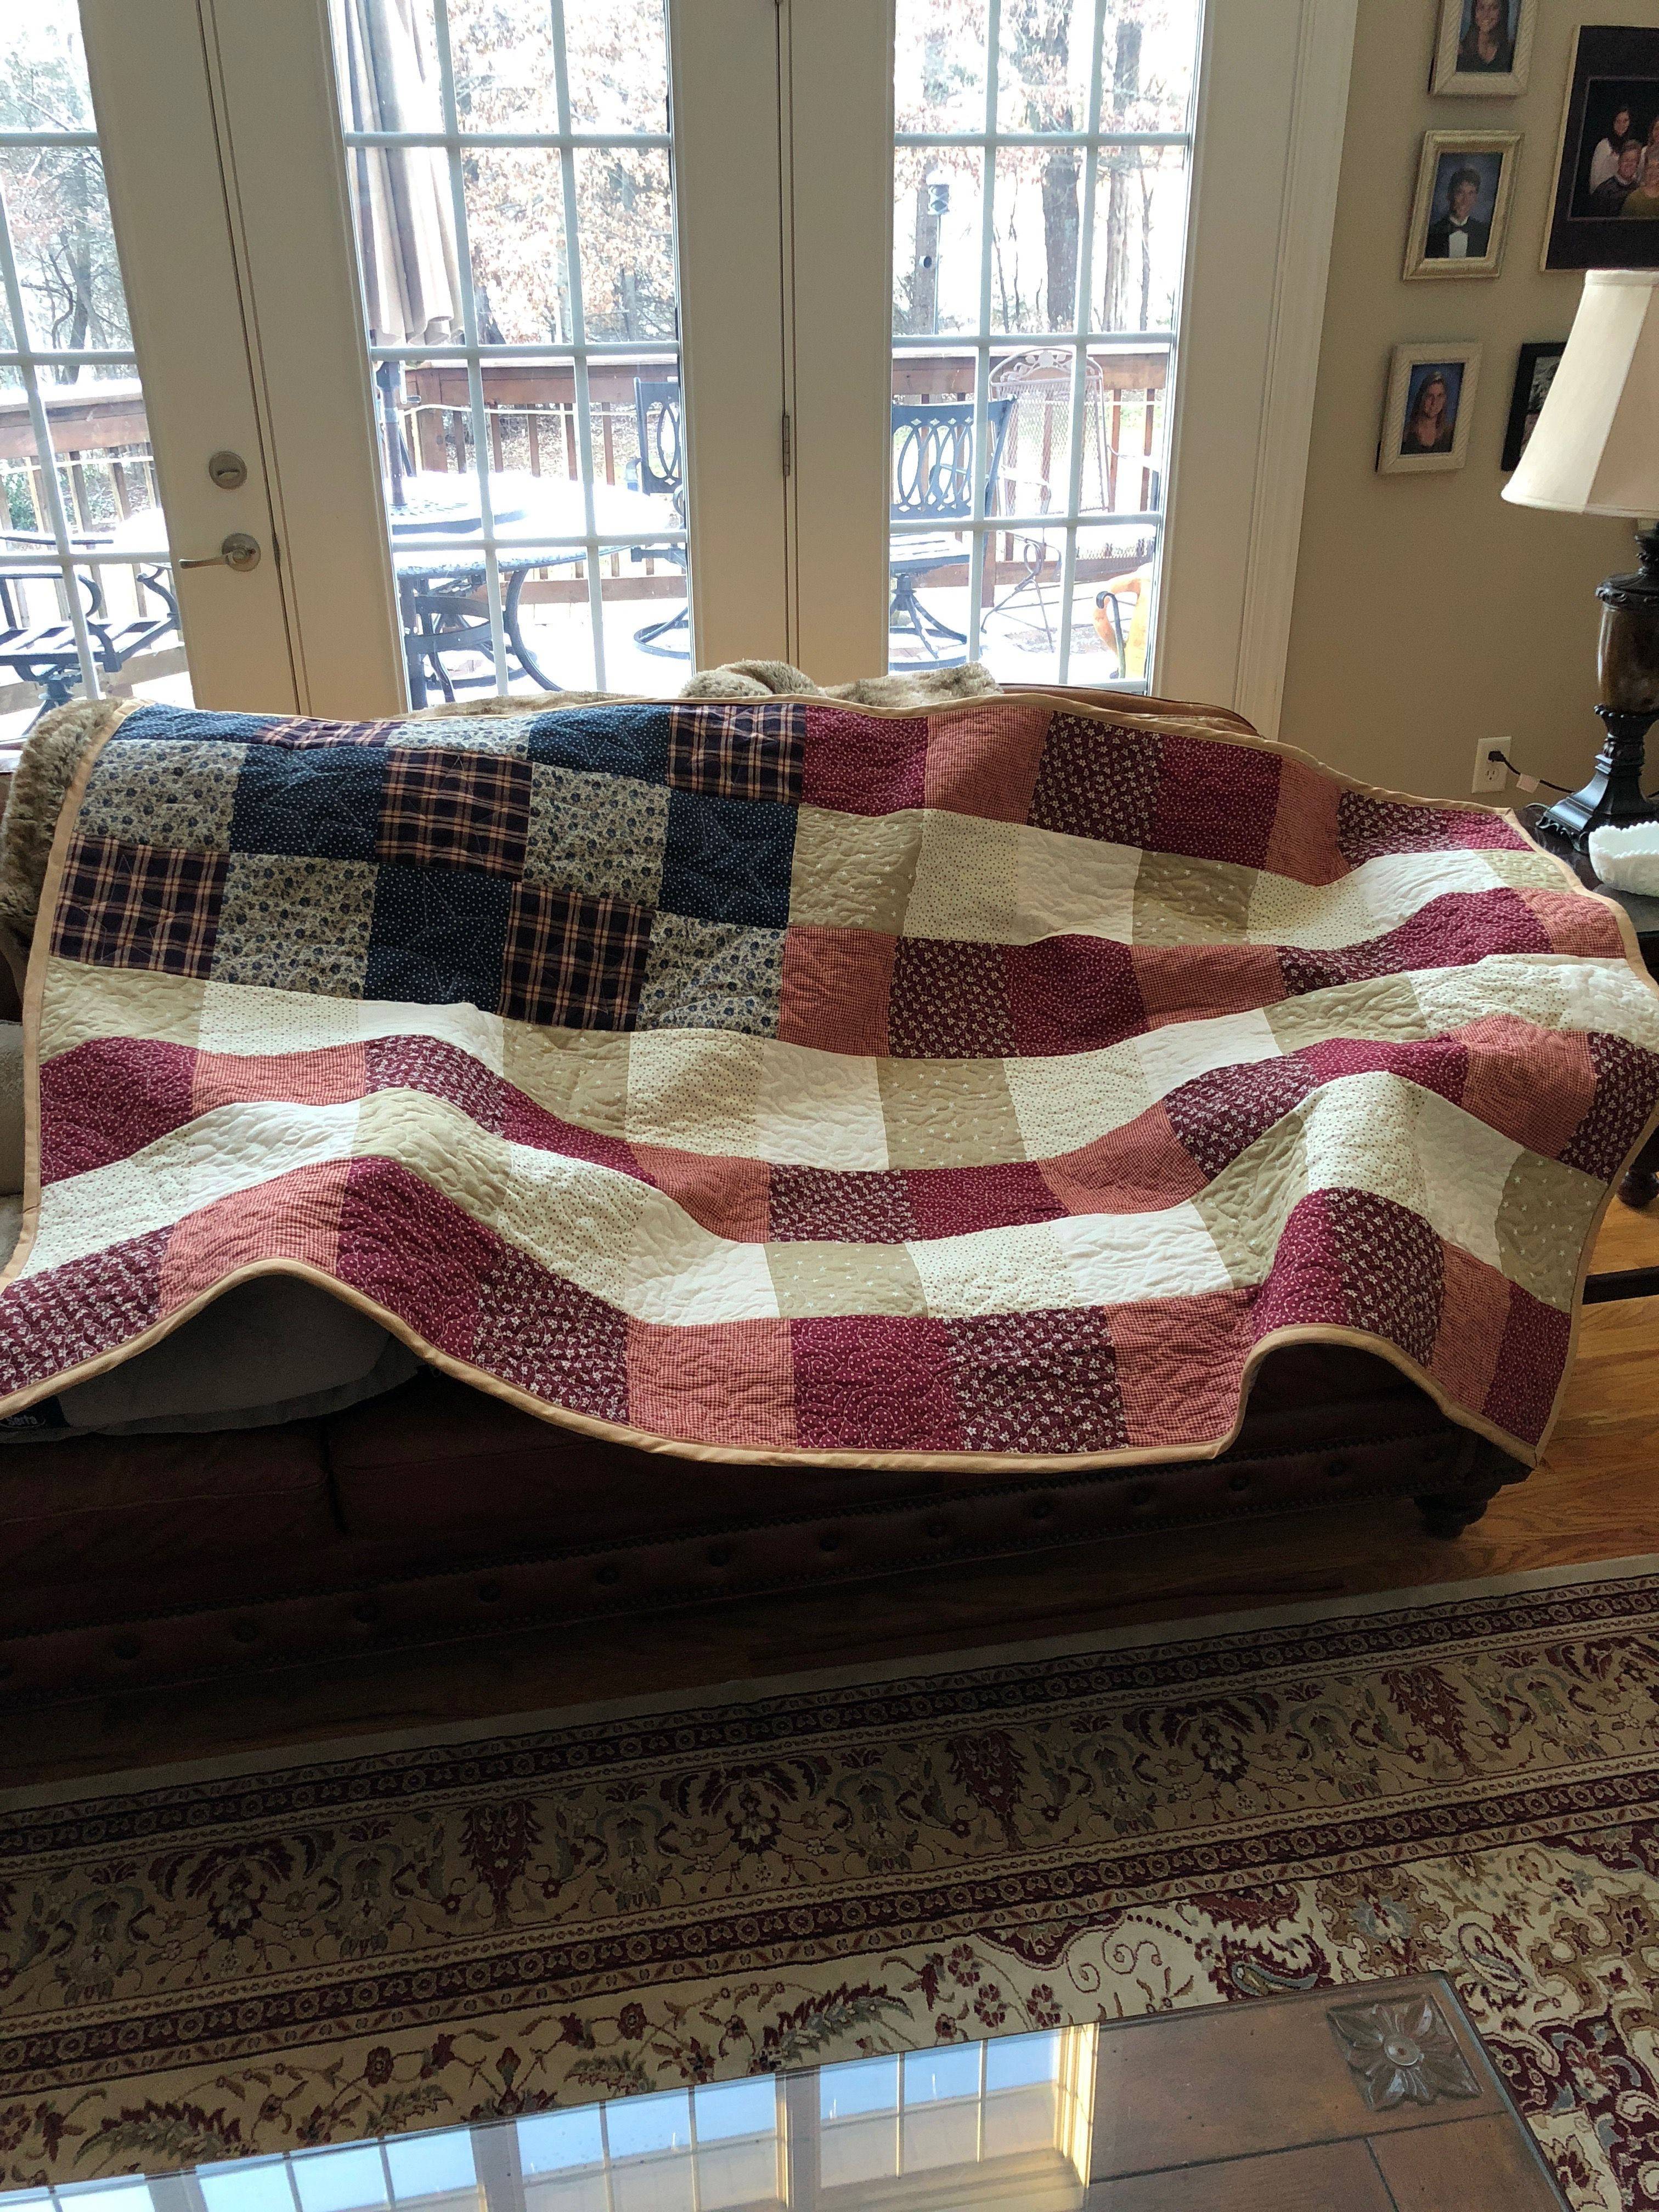 Pin by Renee Murphy on Patriotic | Rustic quilts, Barn quilt